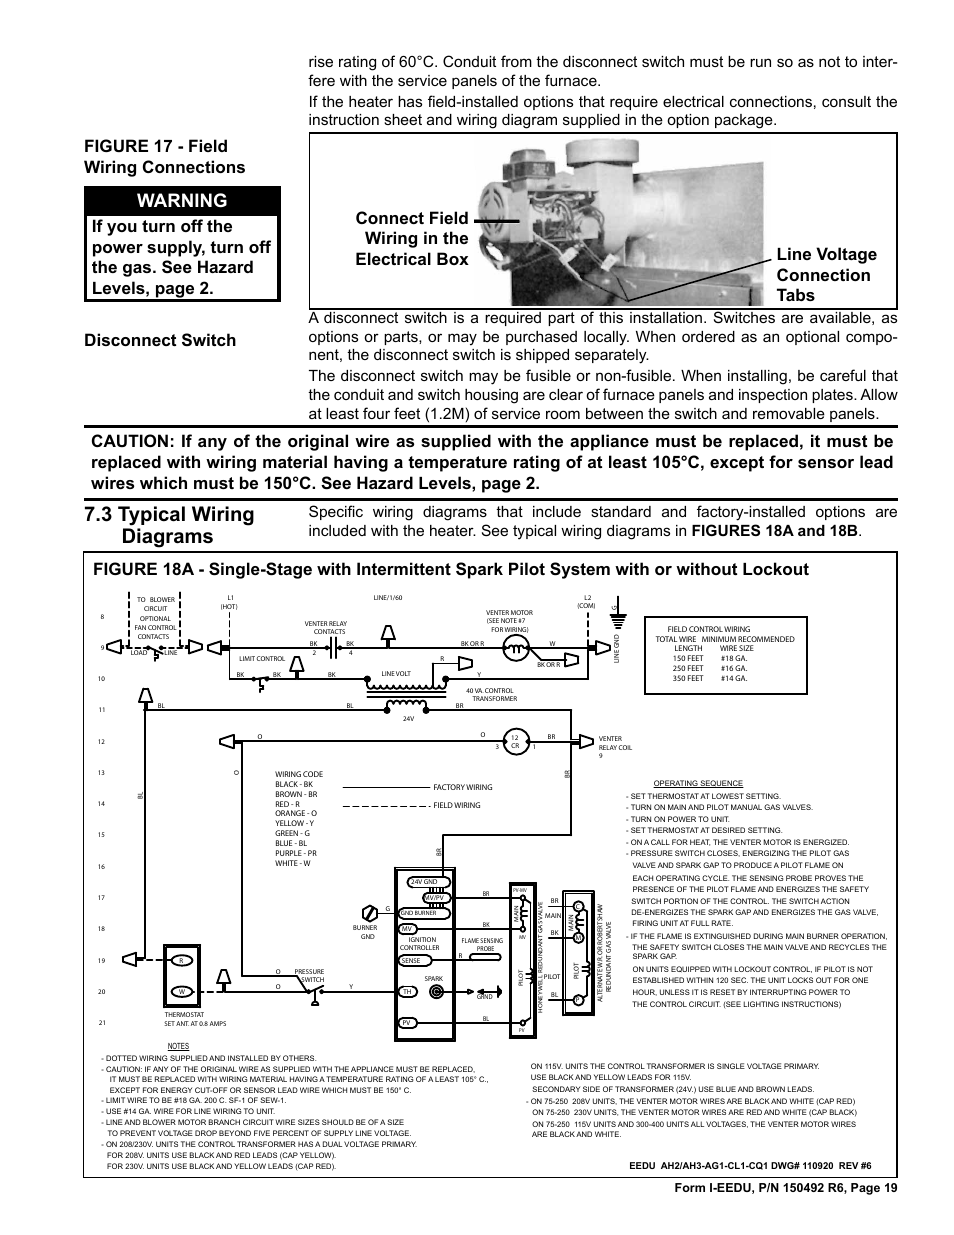 Heater Control Unit Wiring Diagram 3 Typical Diagrams Warning Reznor Eedu Installation Manual User Page 19 32